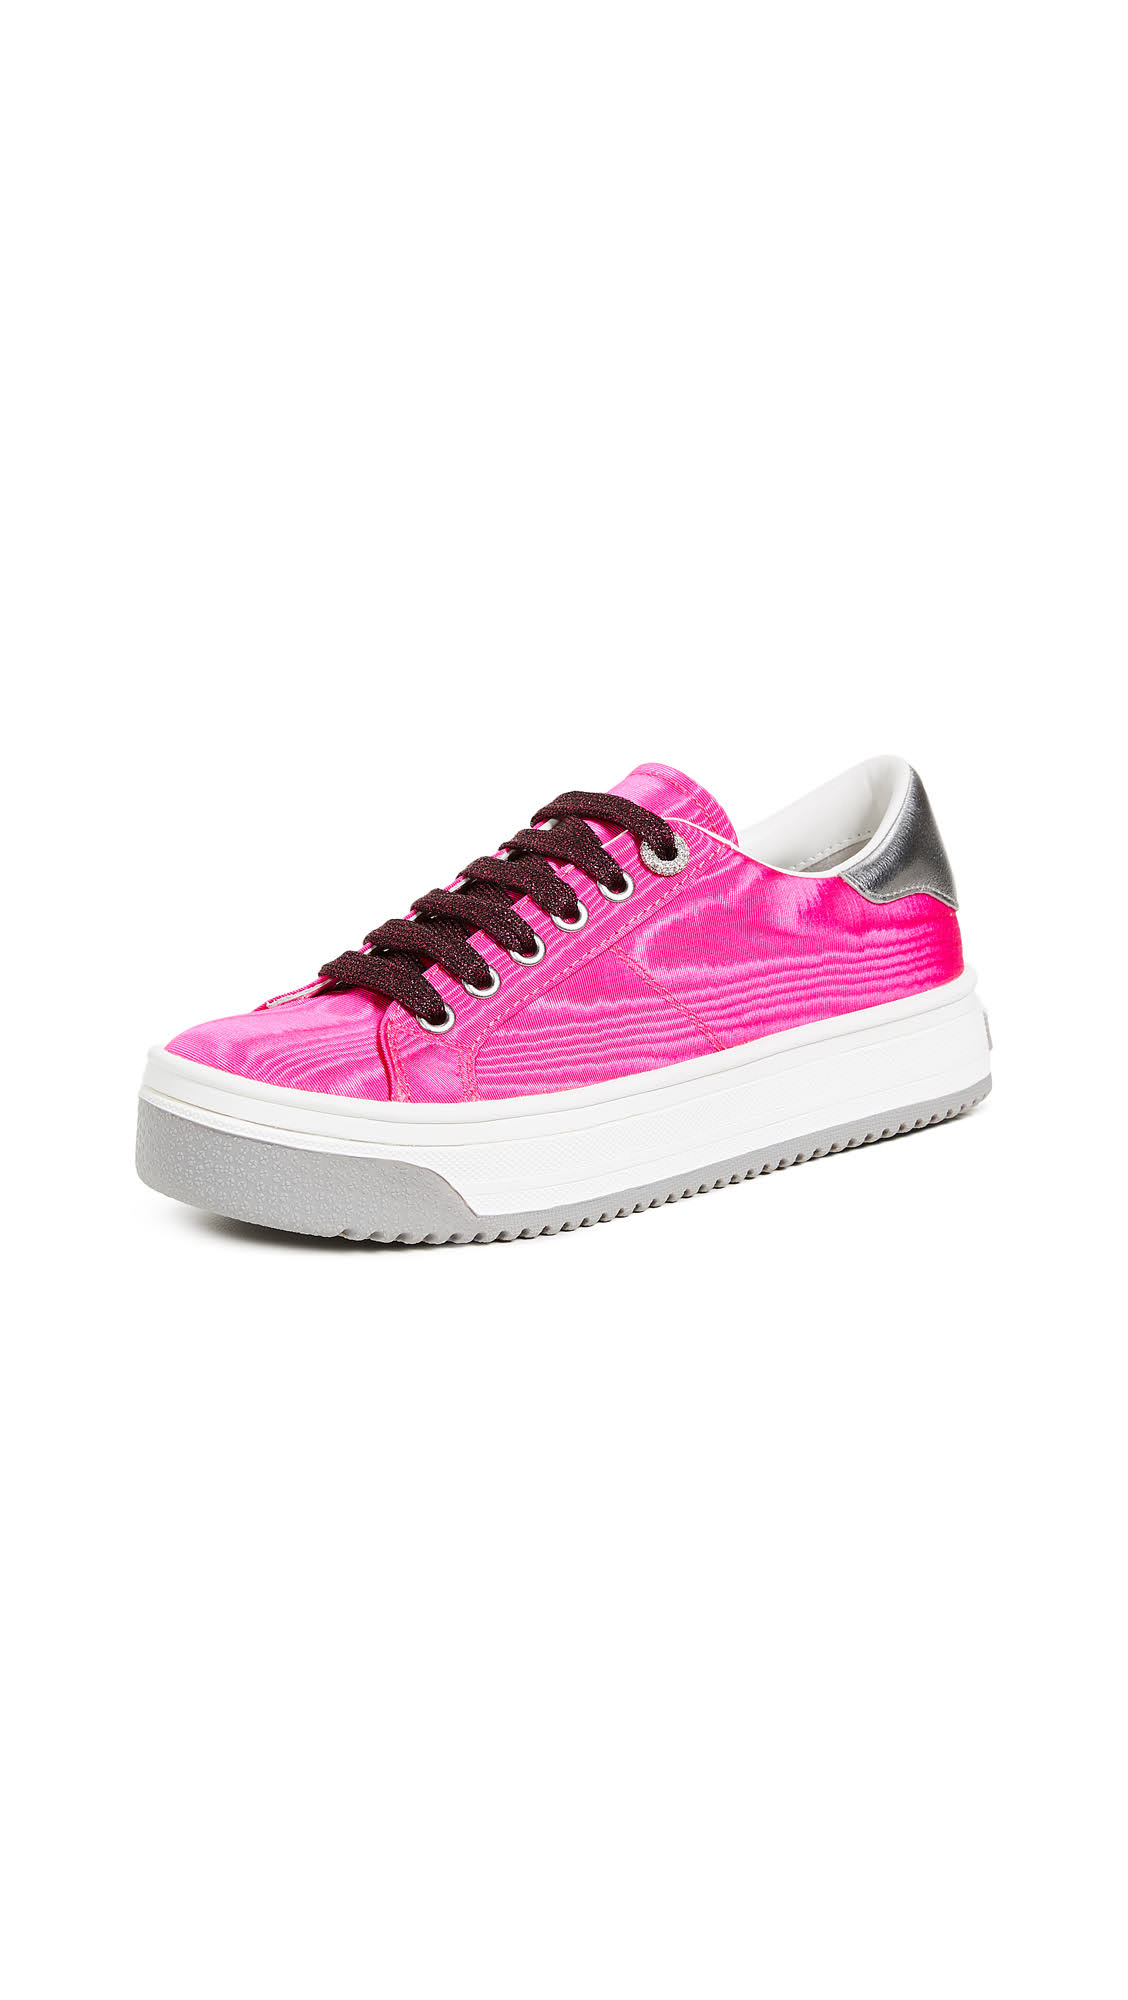 Color Marc Multi Sneakers Jacobs Magenta 39 Empire Sole qOAtwxaR